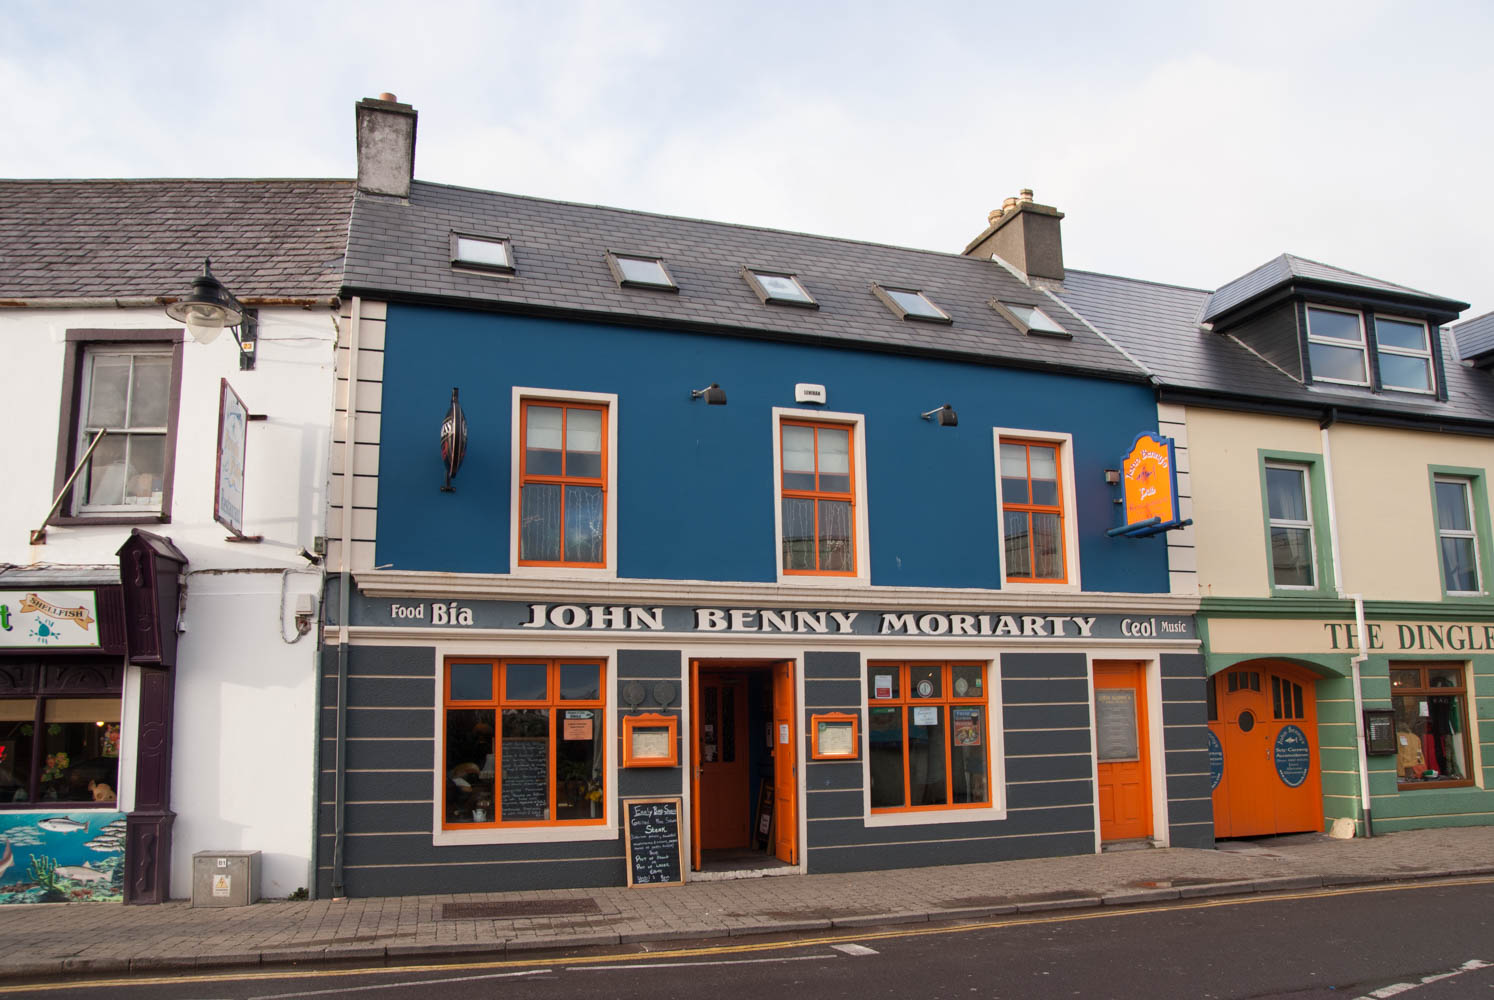 John Moriarity is a famous pub for Irish music.